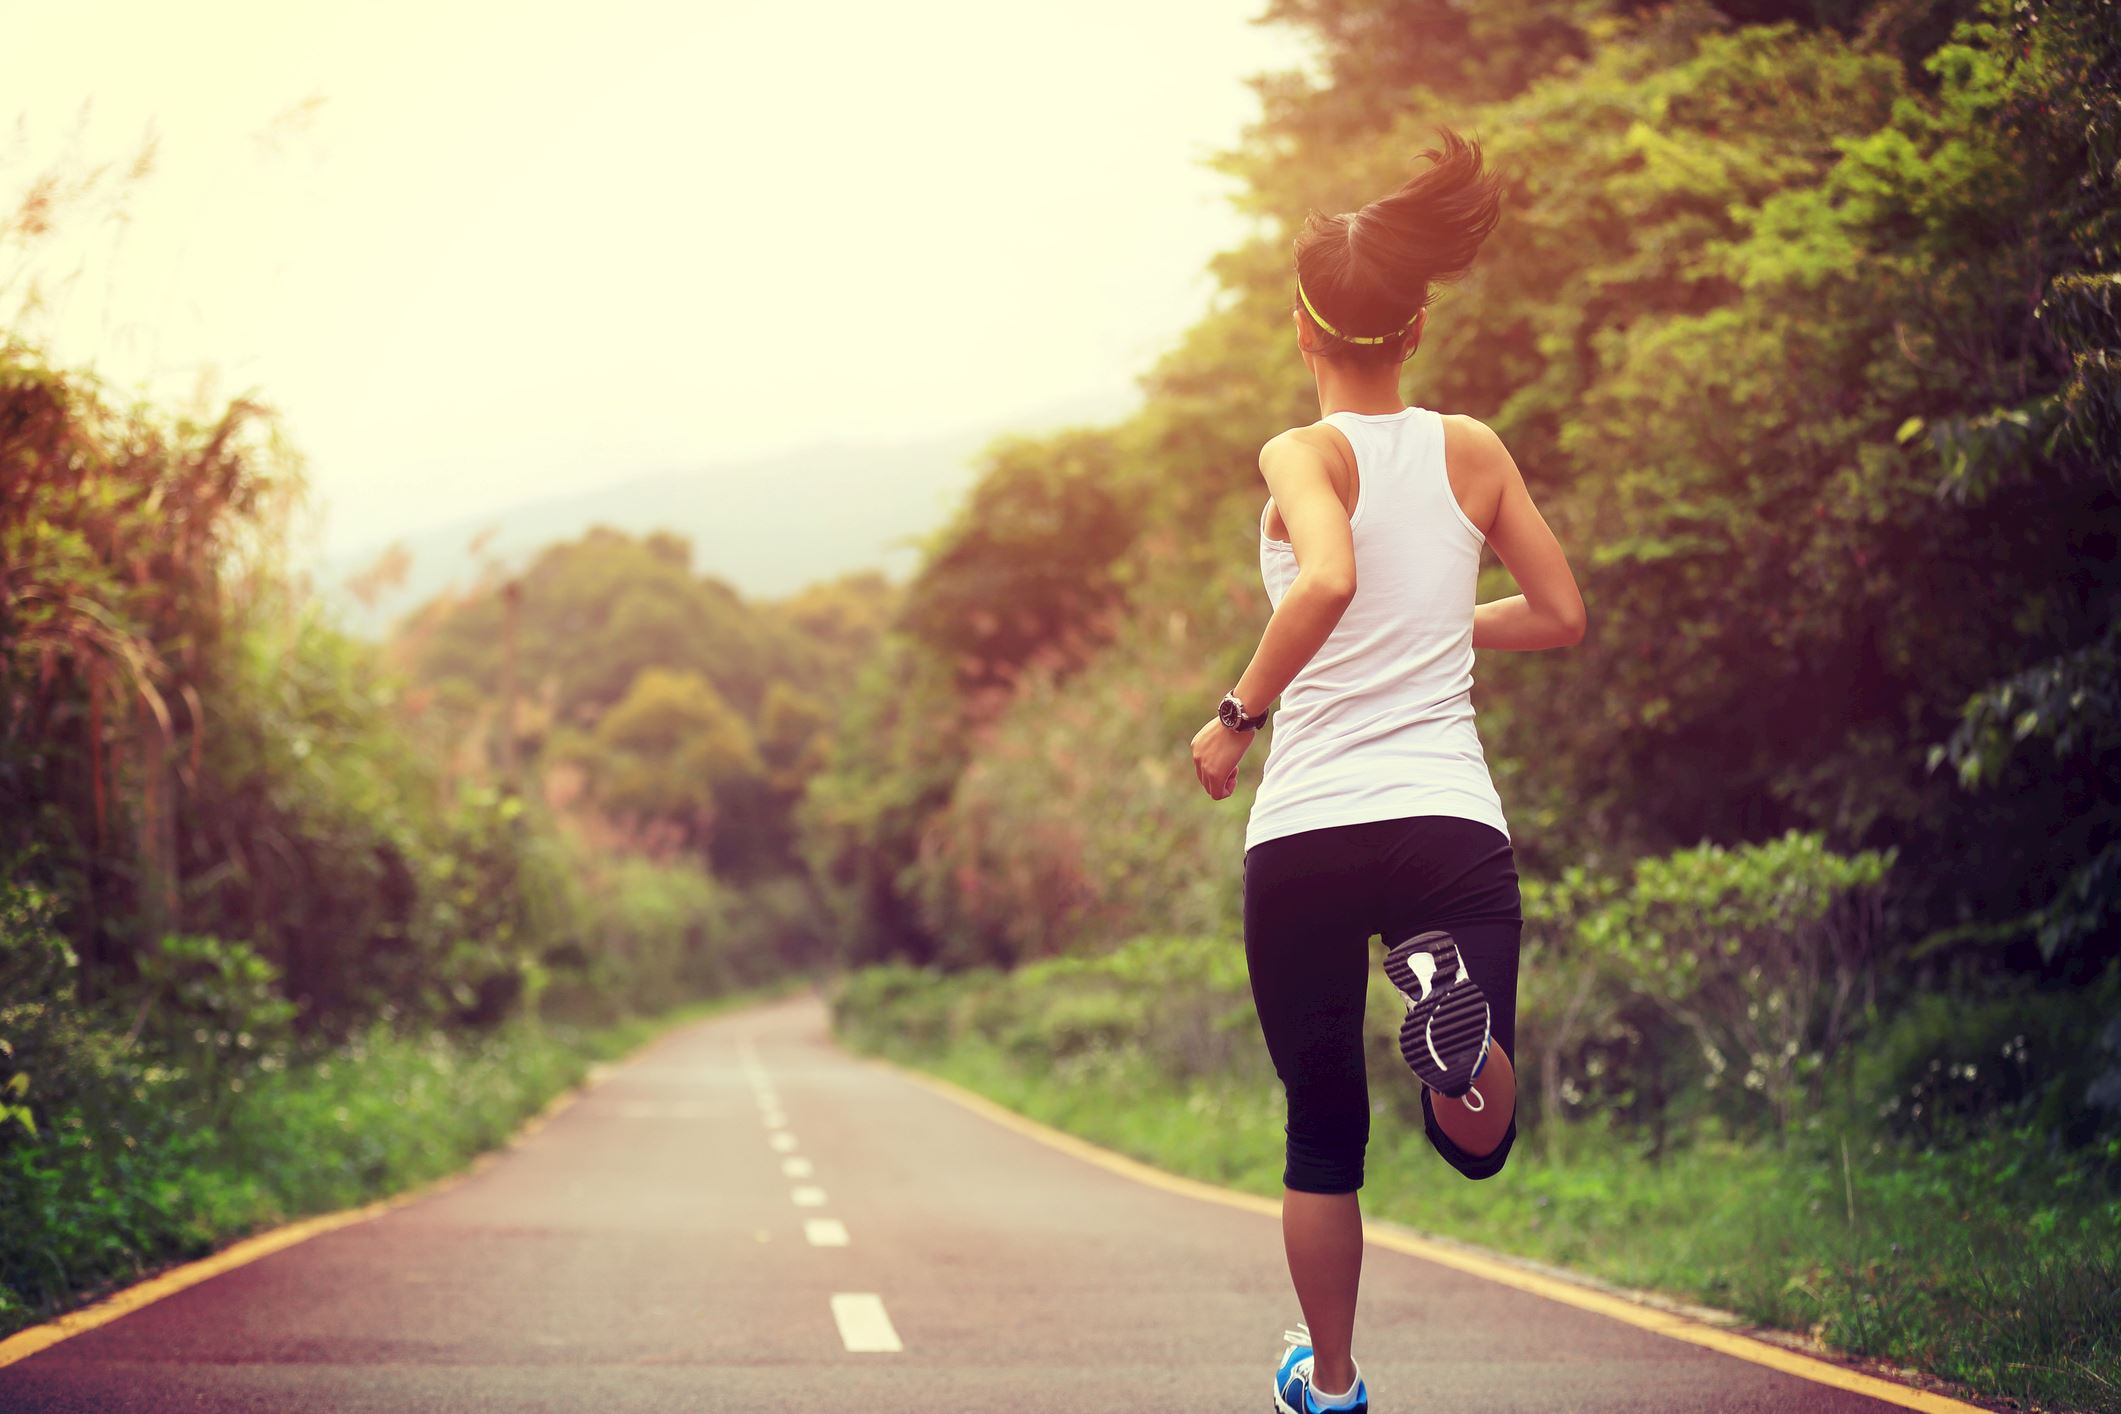 Should You Make Your Run More Exclusive By Having A Participant Limit?